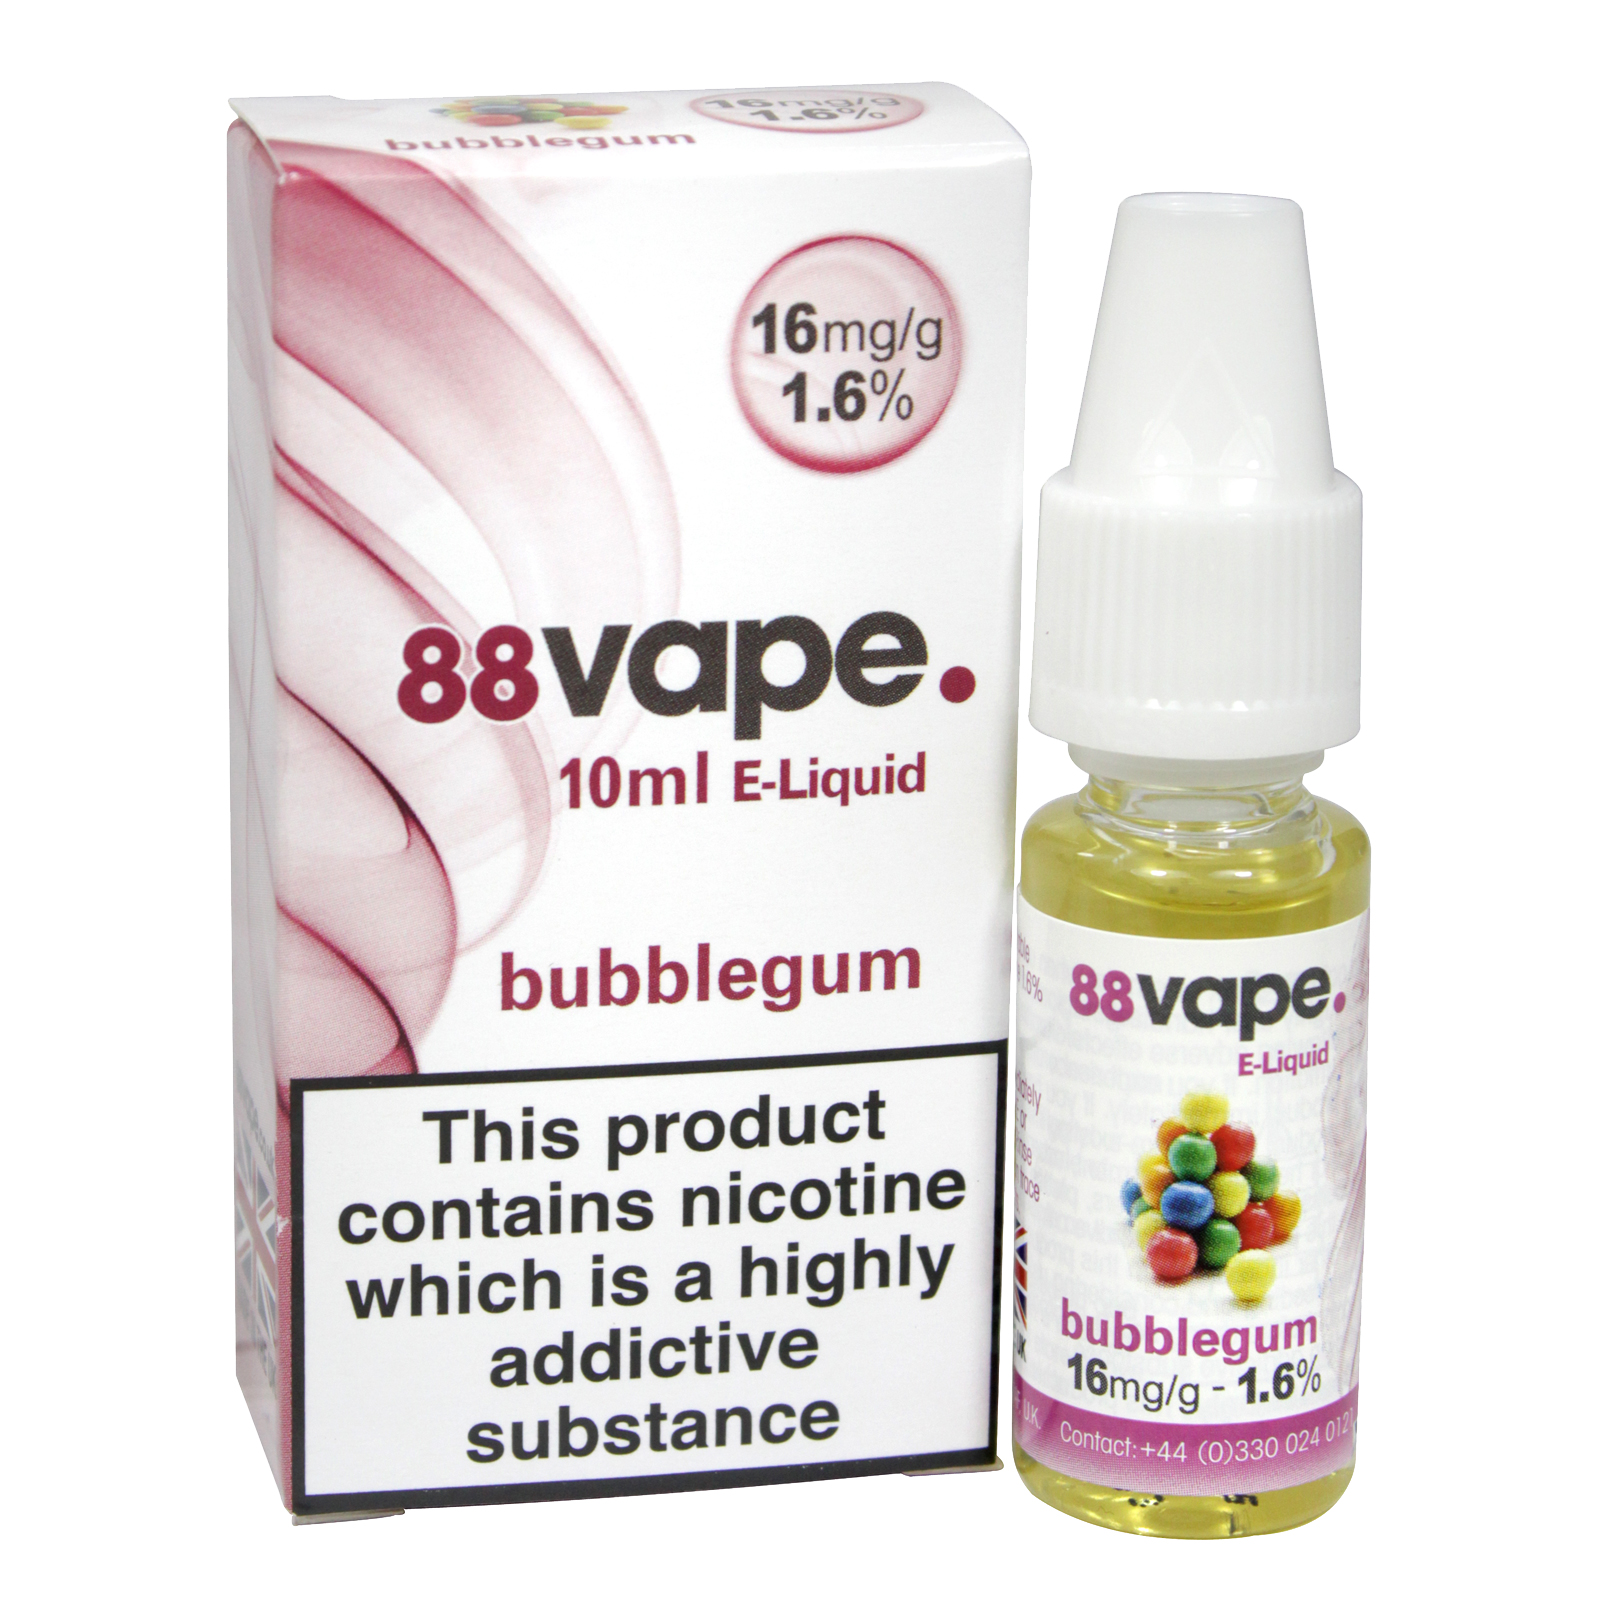 88VAPE 10ML E-LIQUID 16MG BUBBLEGUM